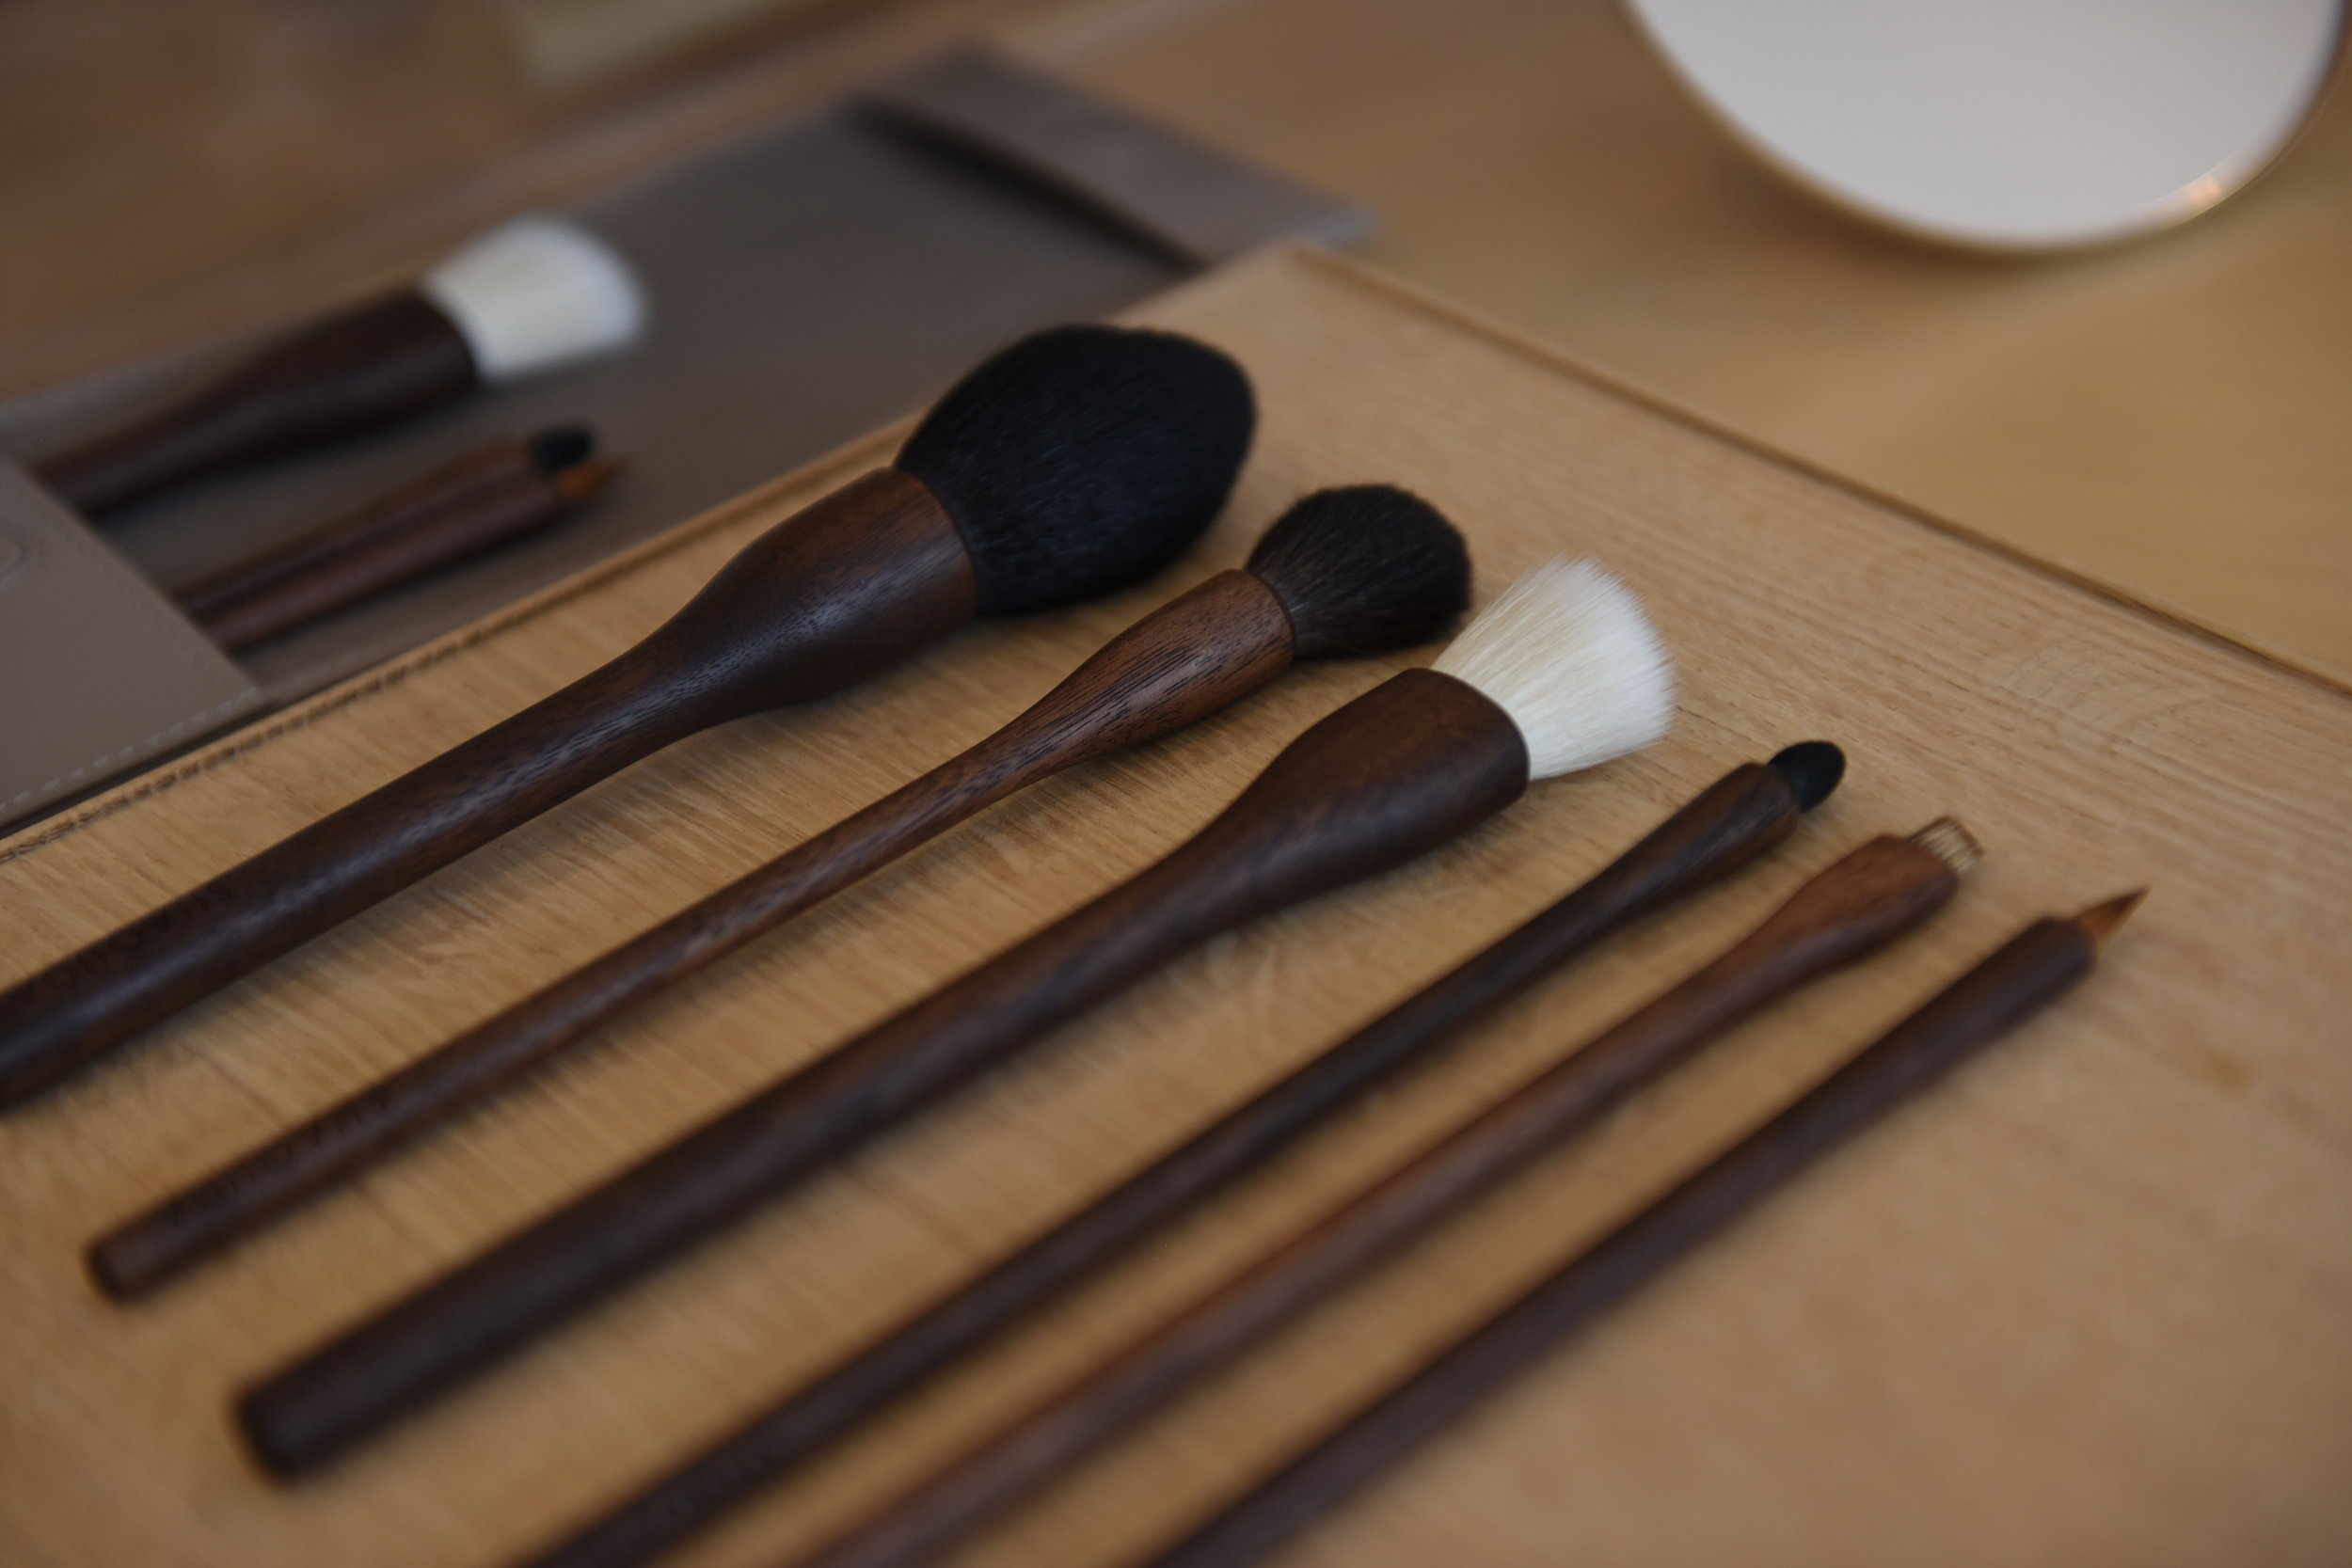 Ubu Make-up brushes